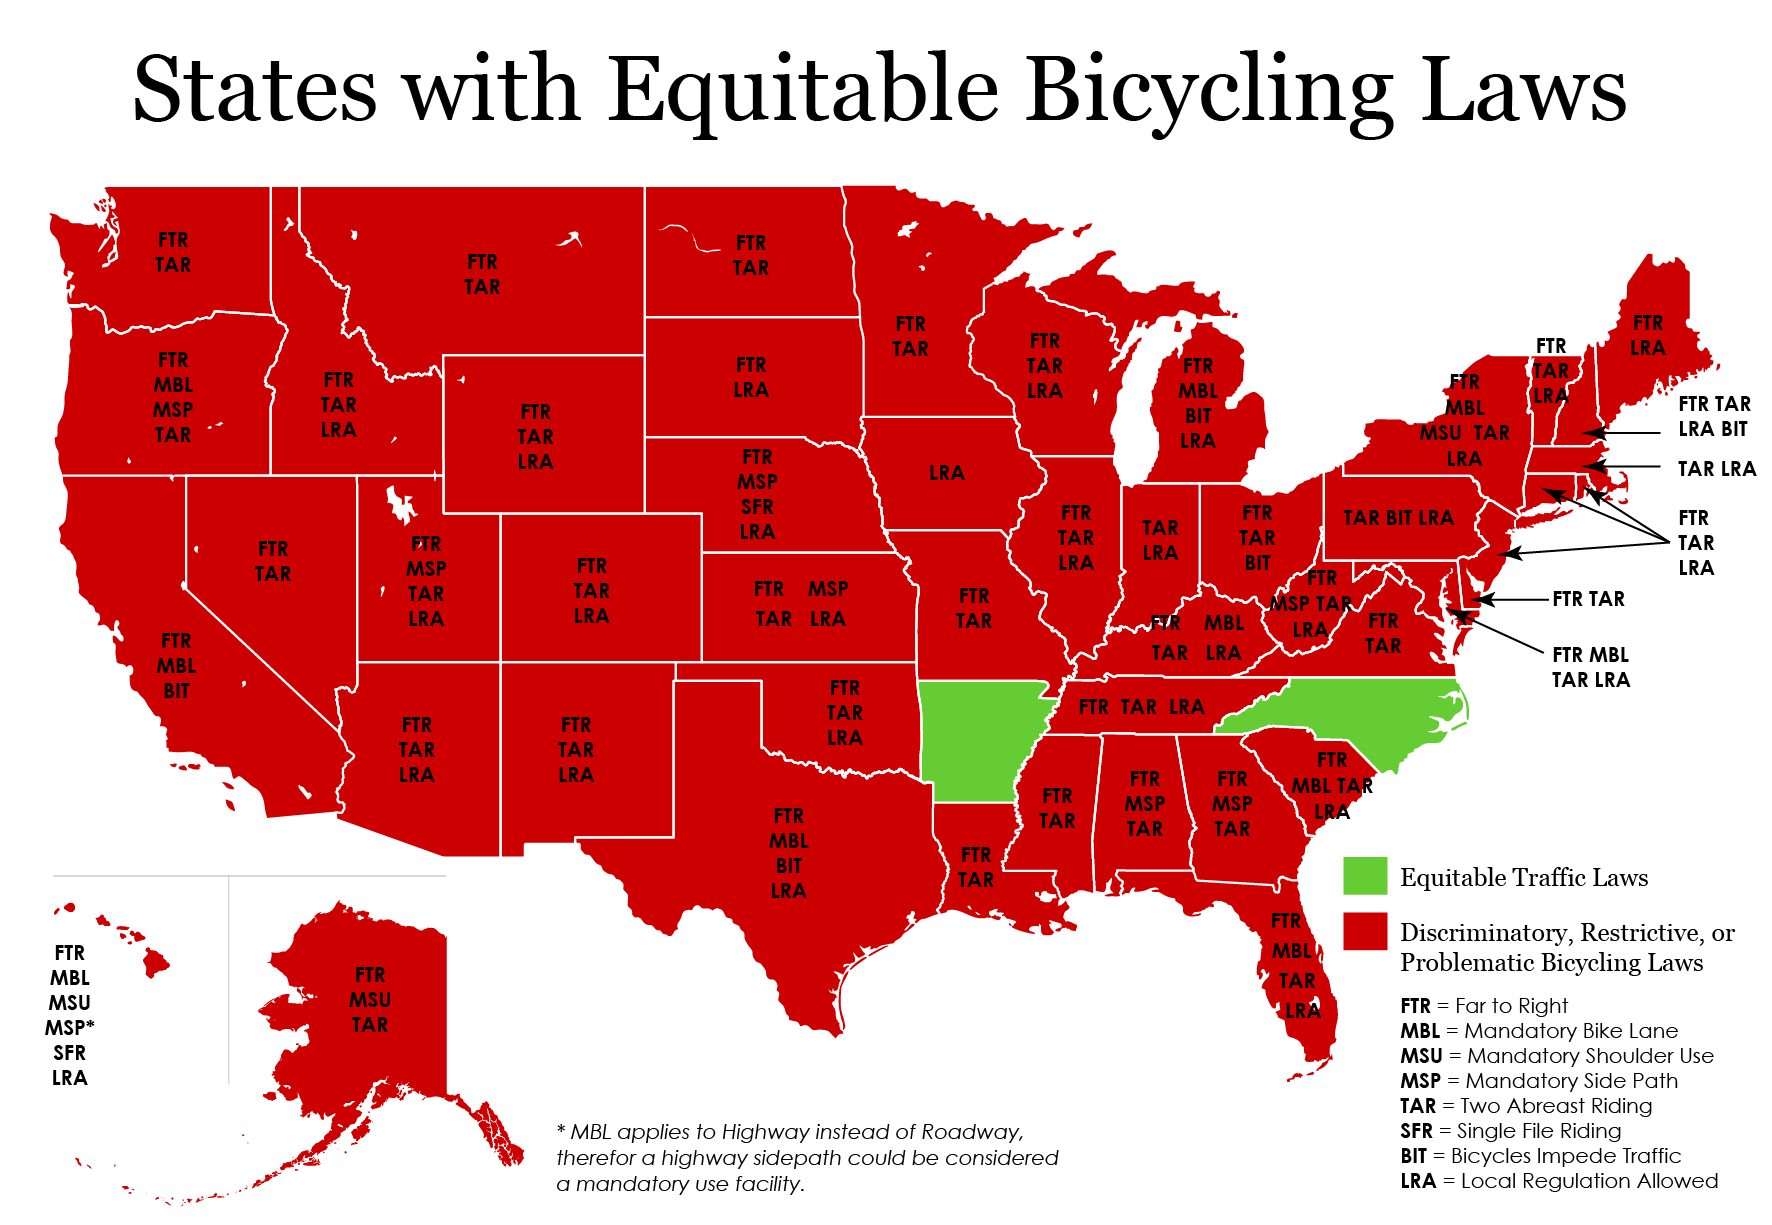 states with equitable laws